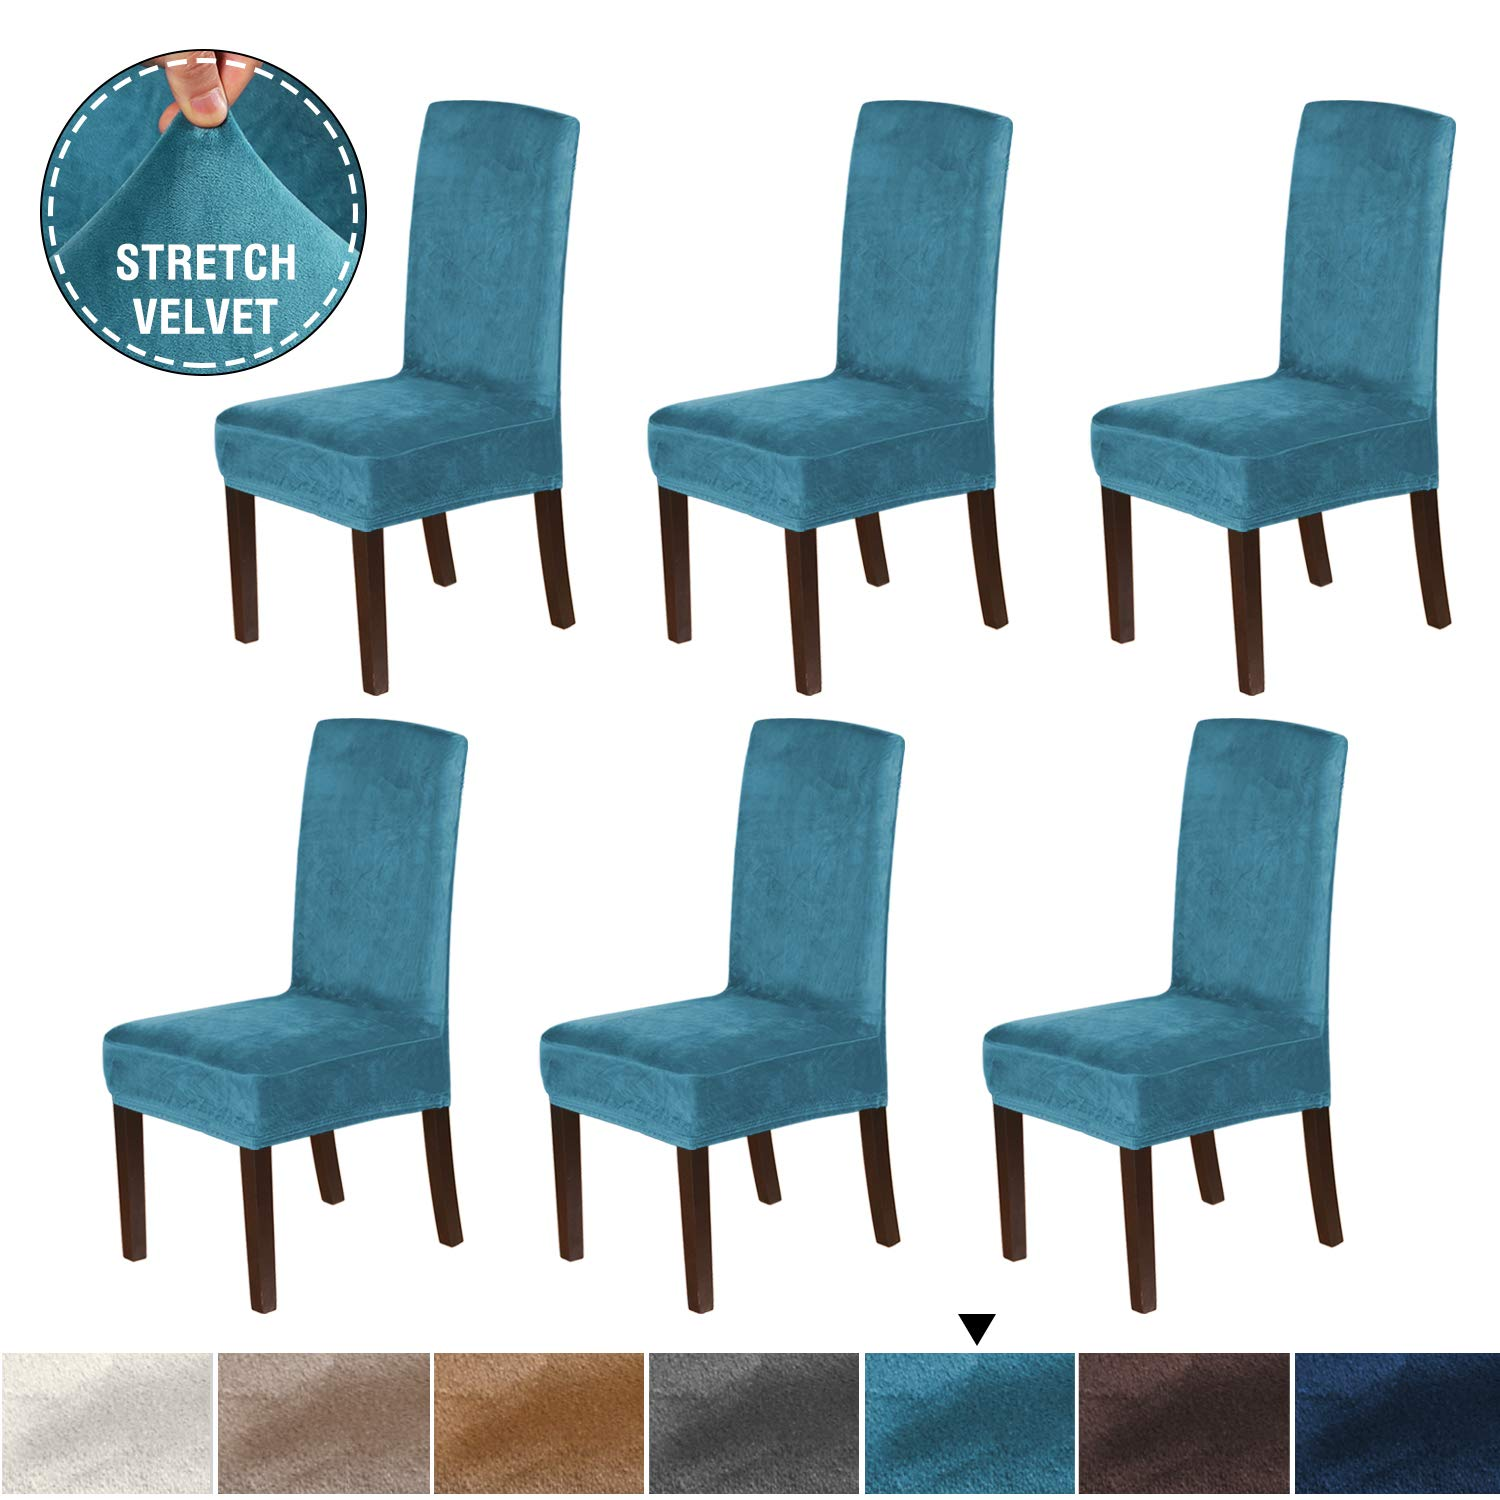 H.VERSAILTEX Rich Velvet Dining Chair Covers (Set of 6) Dining Chair Slipcover Super Stretch Stylish Furniture Cover/Protector, Modern Velvet Plush Slipcover High Chair Cover, Peacock Blue